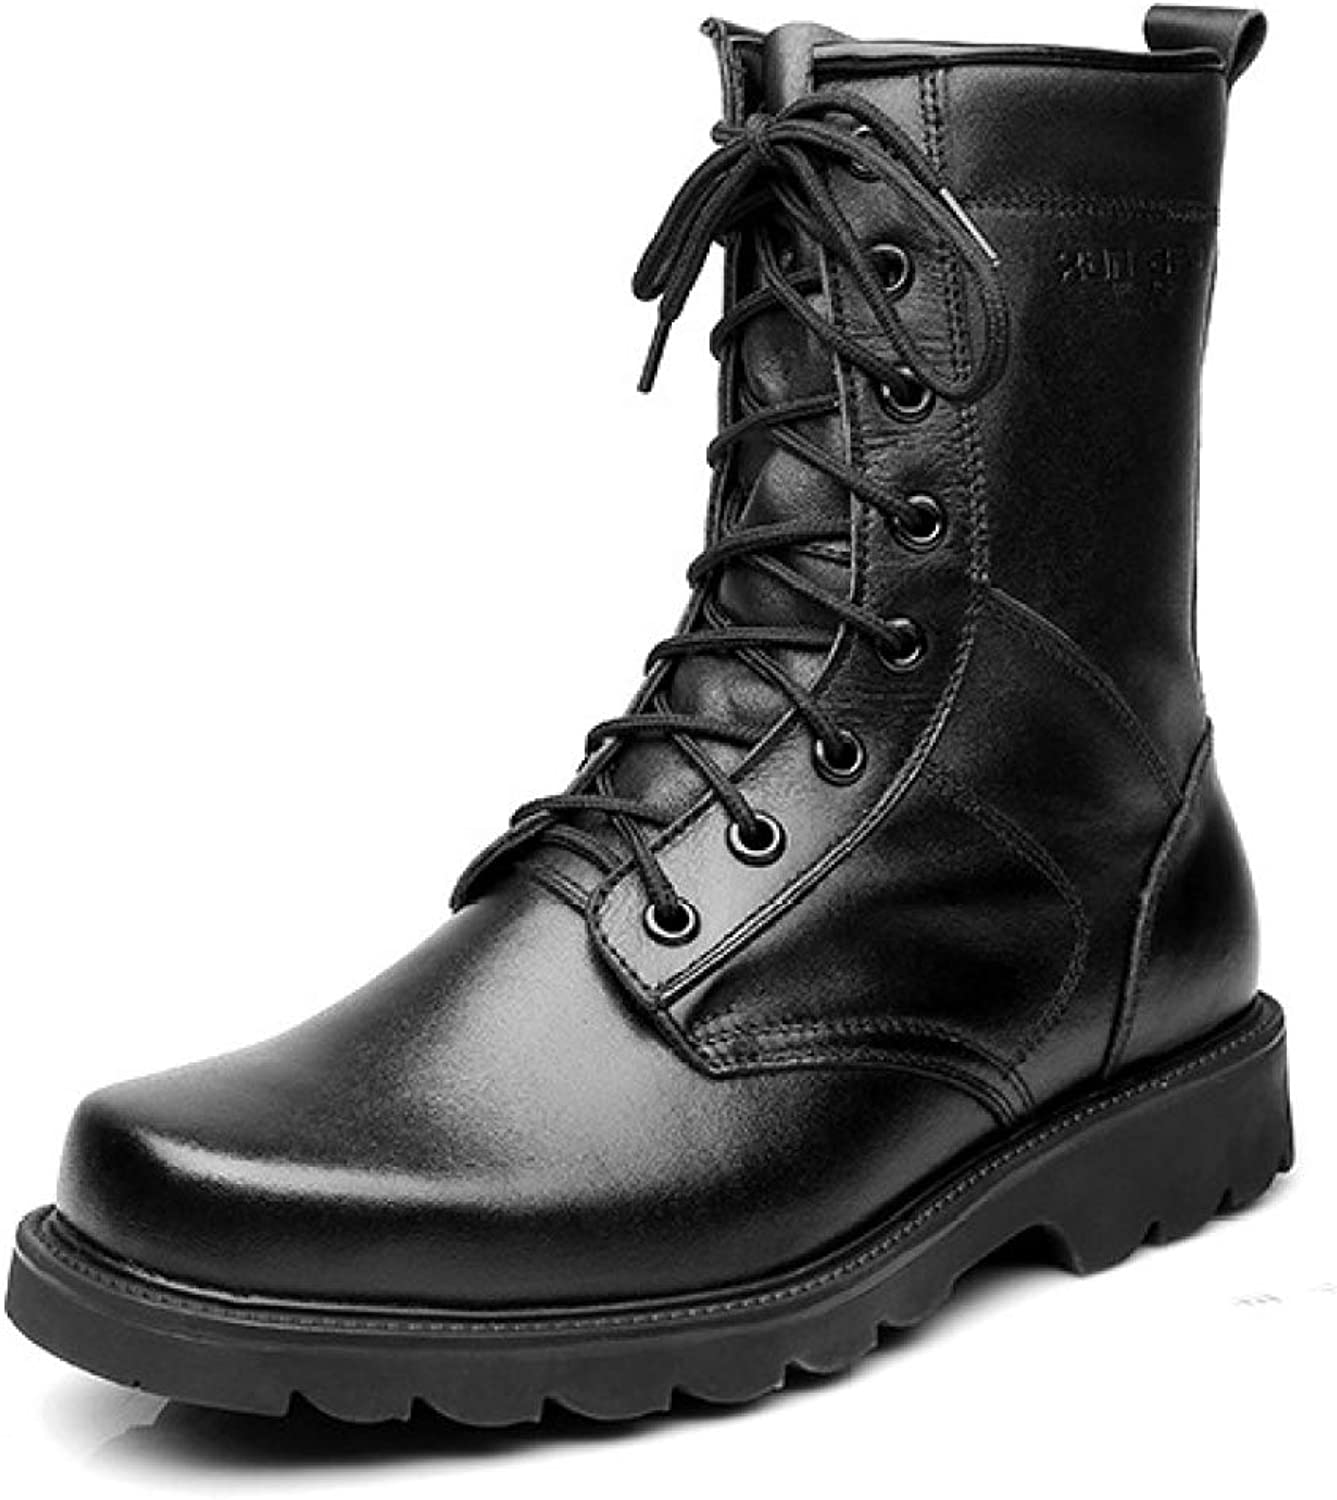 Men's Full Leather Army Military Combat Boots Tactical Hiking Boots Commando Outdoor Lace-up Desert Boots Patrol Ecurity Police shoes